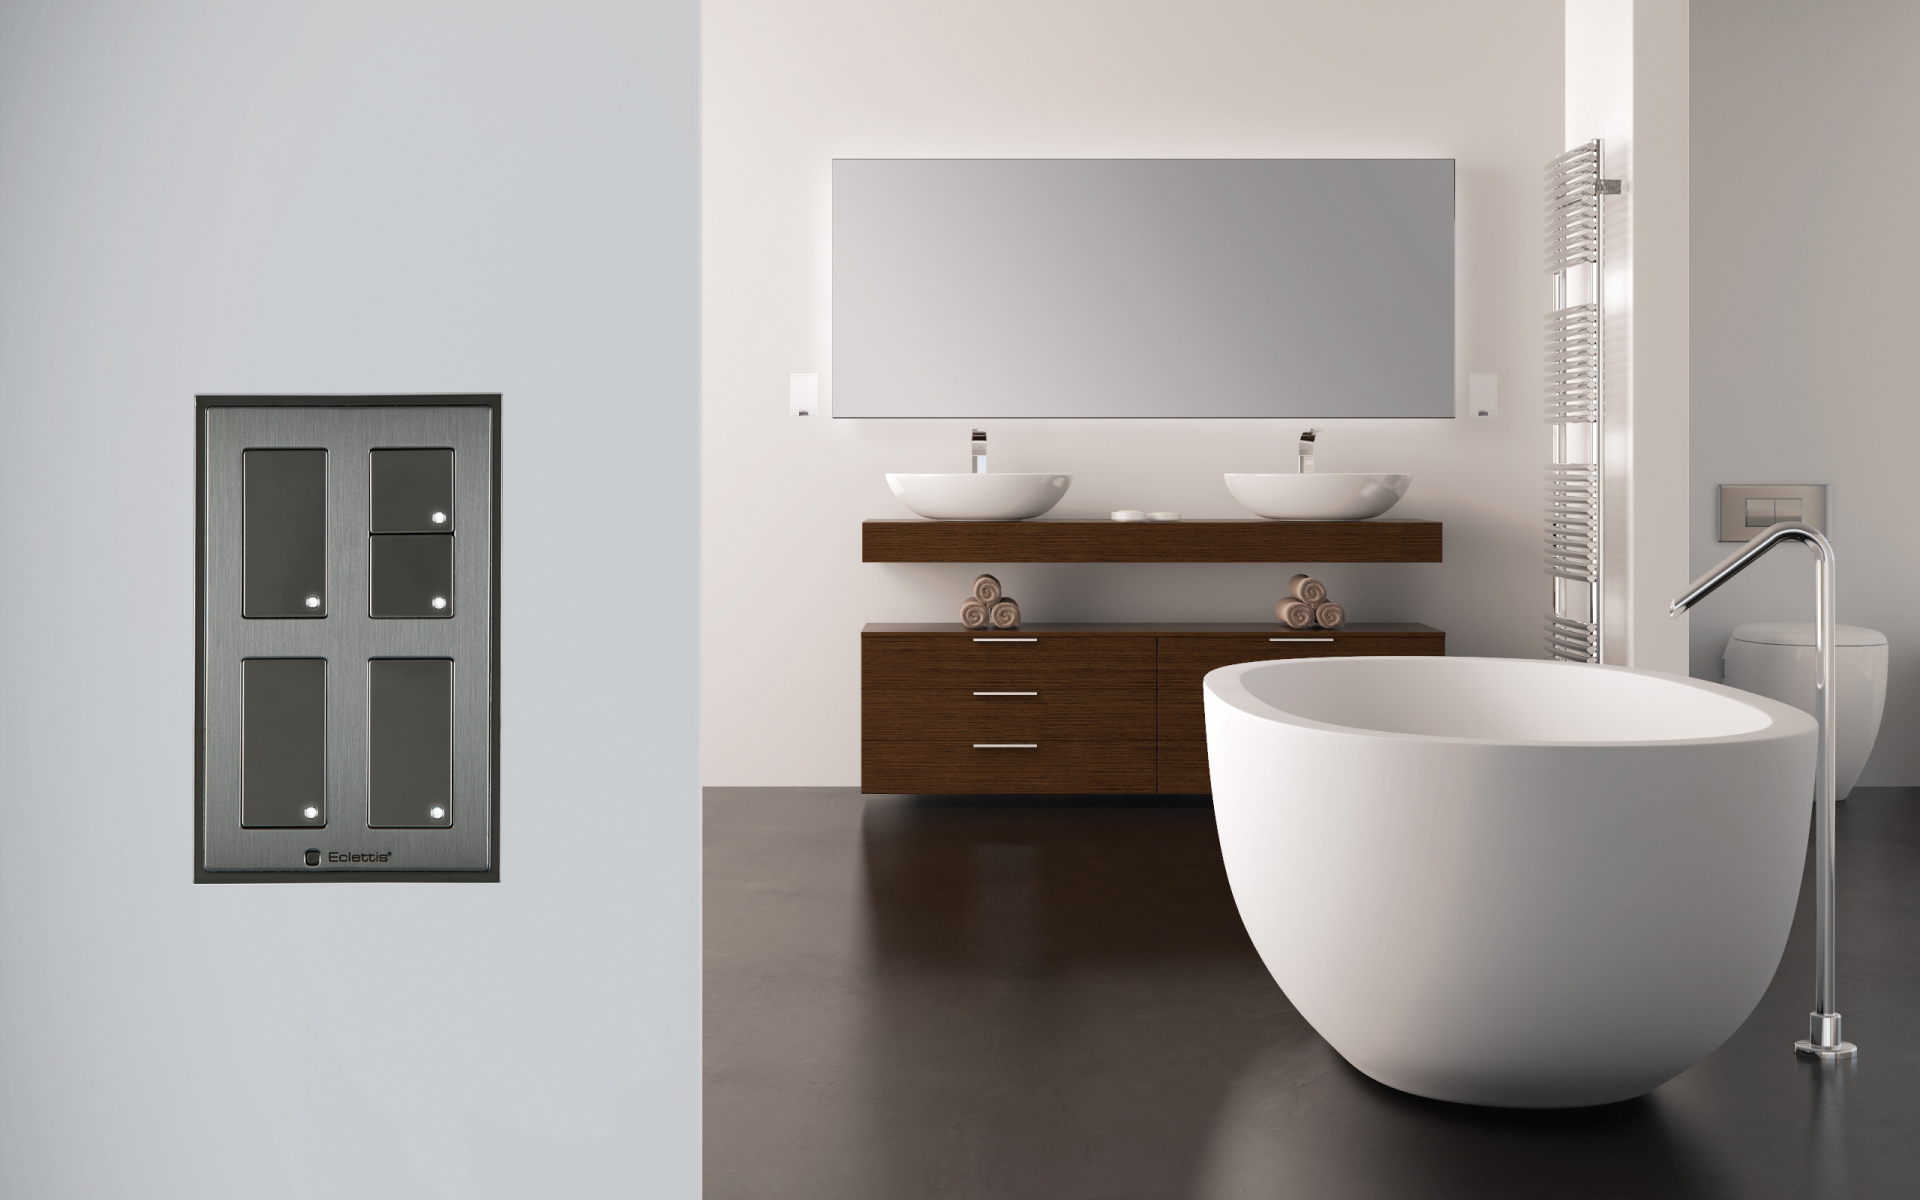 Smoothline-Flush-stainless-steel-switches-push-button-with-led